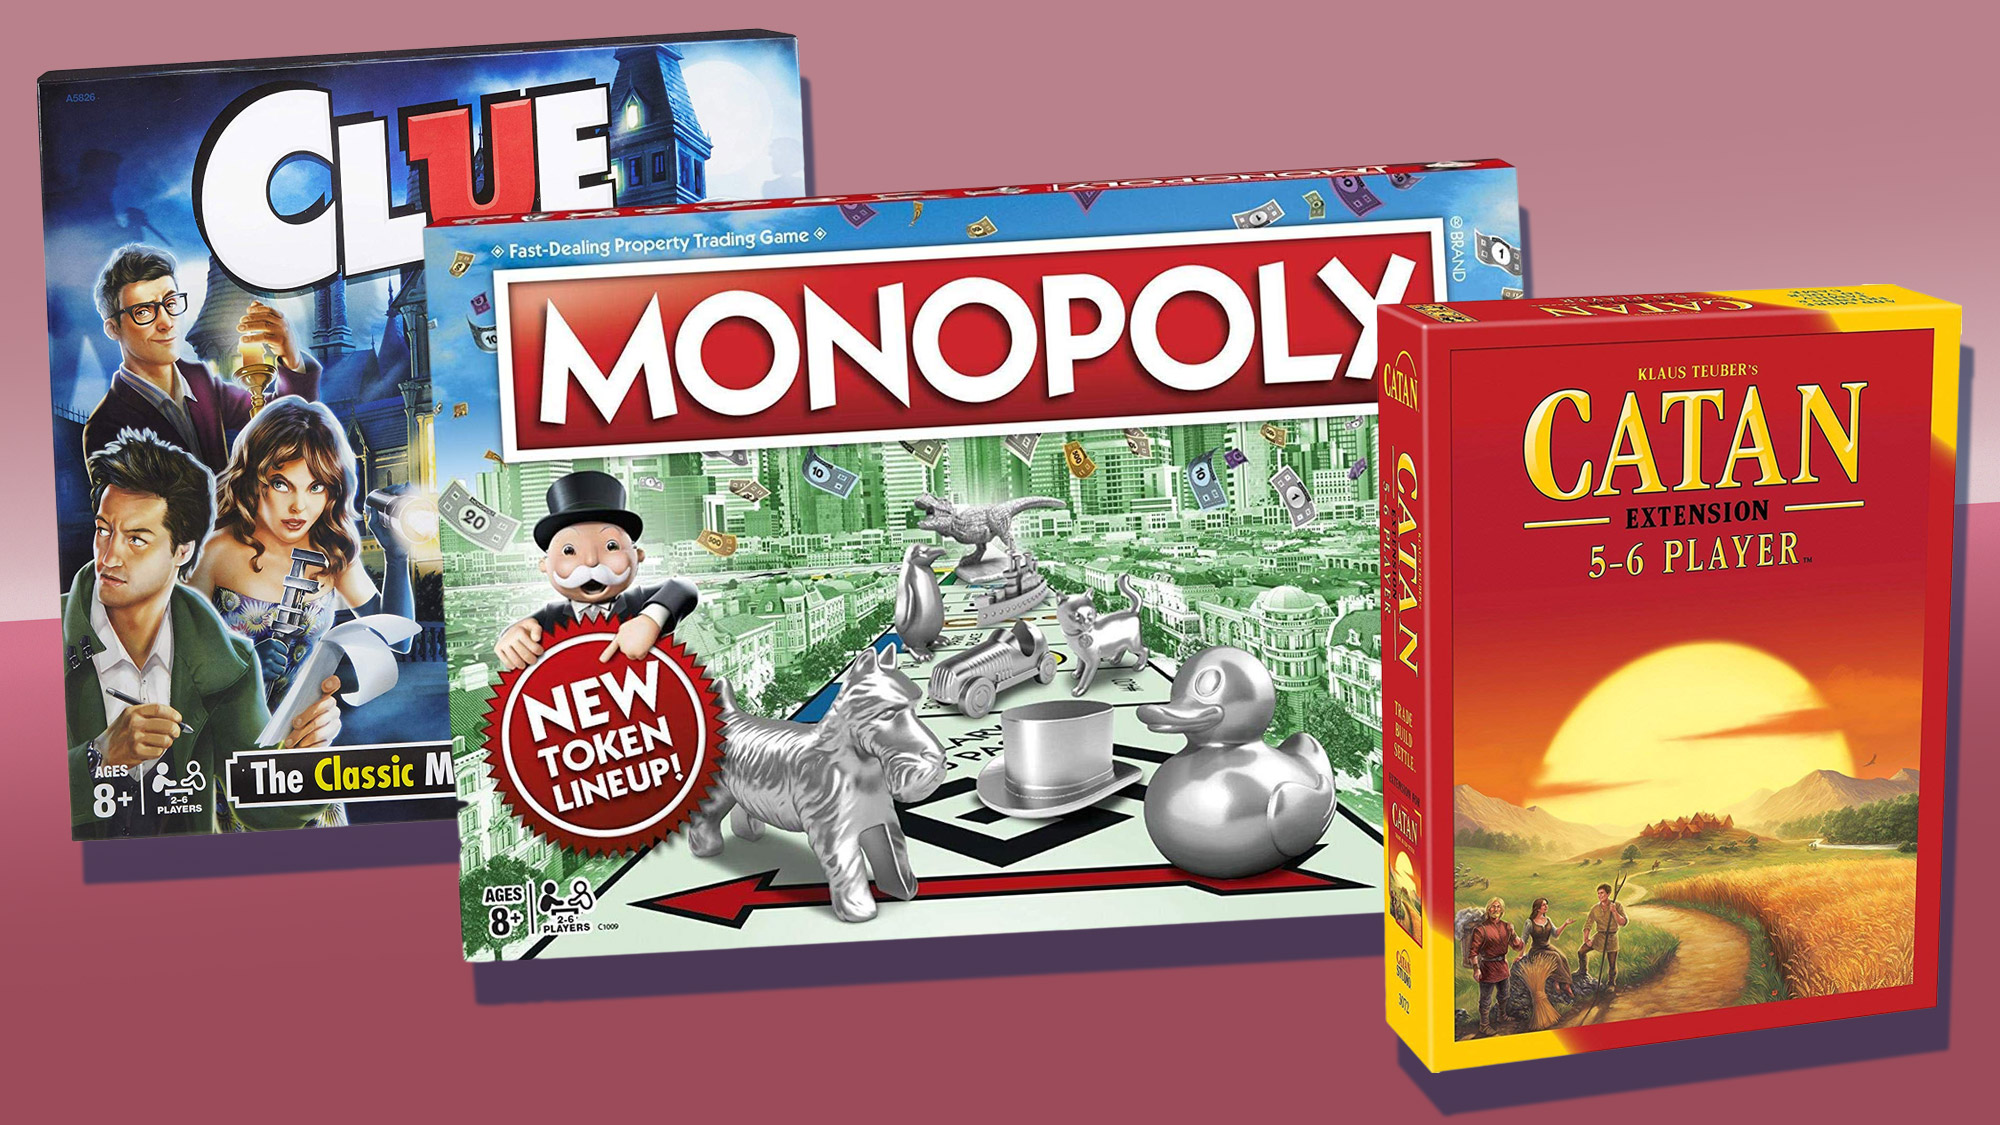 Best board games 2020: our pick of the top games to lose yourself in